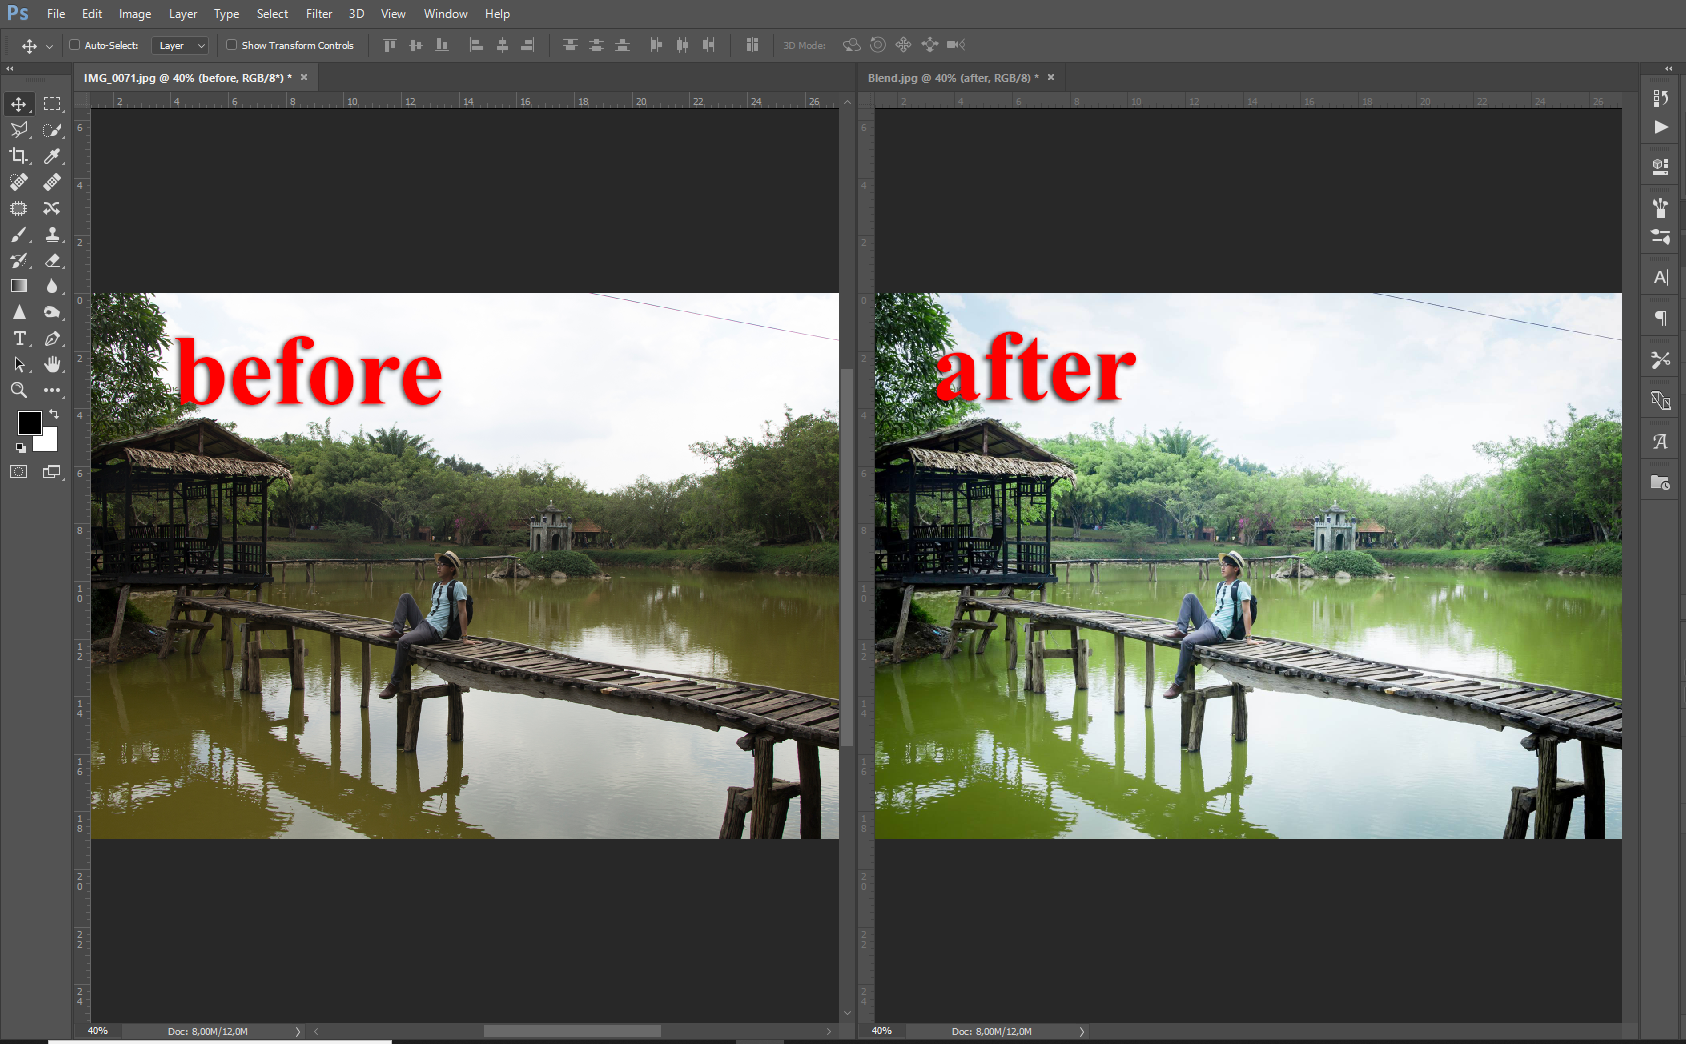 Edit everything professionally any 10 image 24 hours dalivery